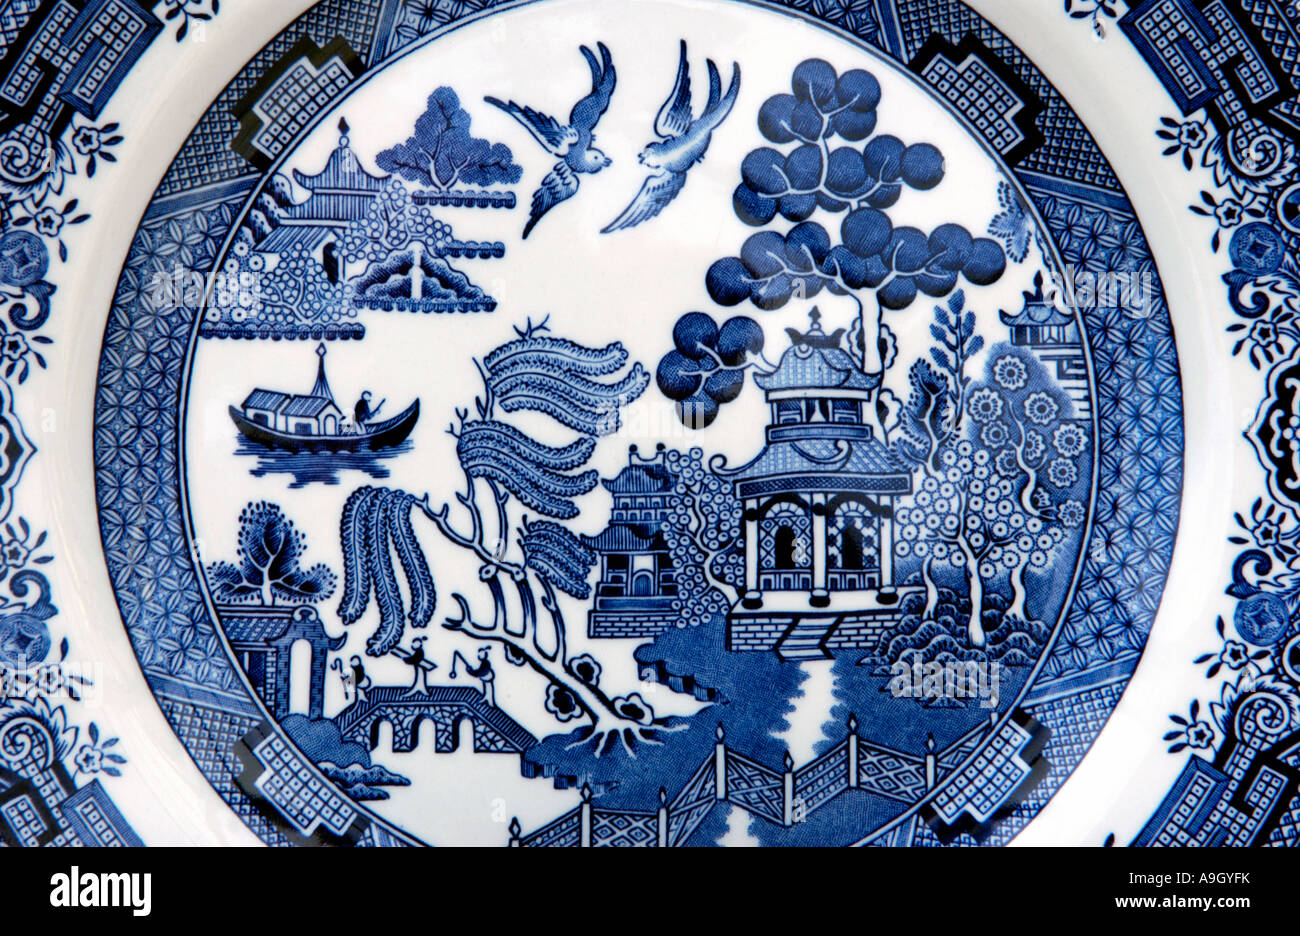 Traditional Willow Pattern design on an English blue and